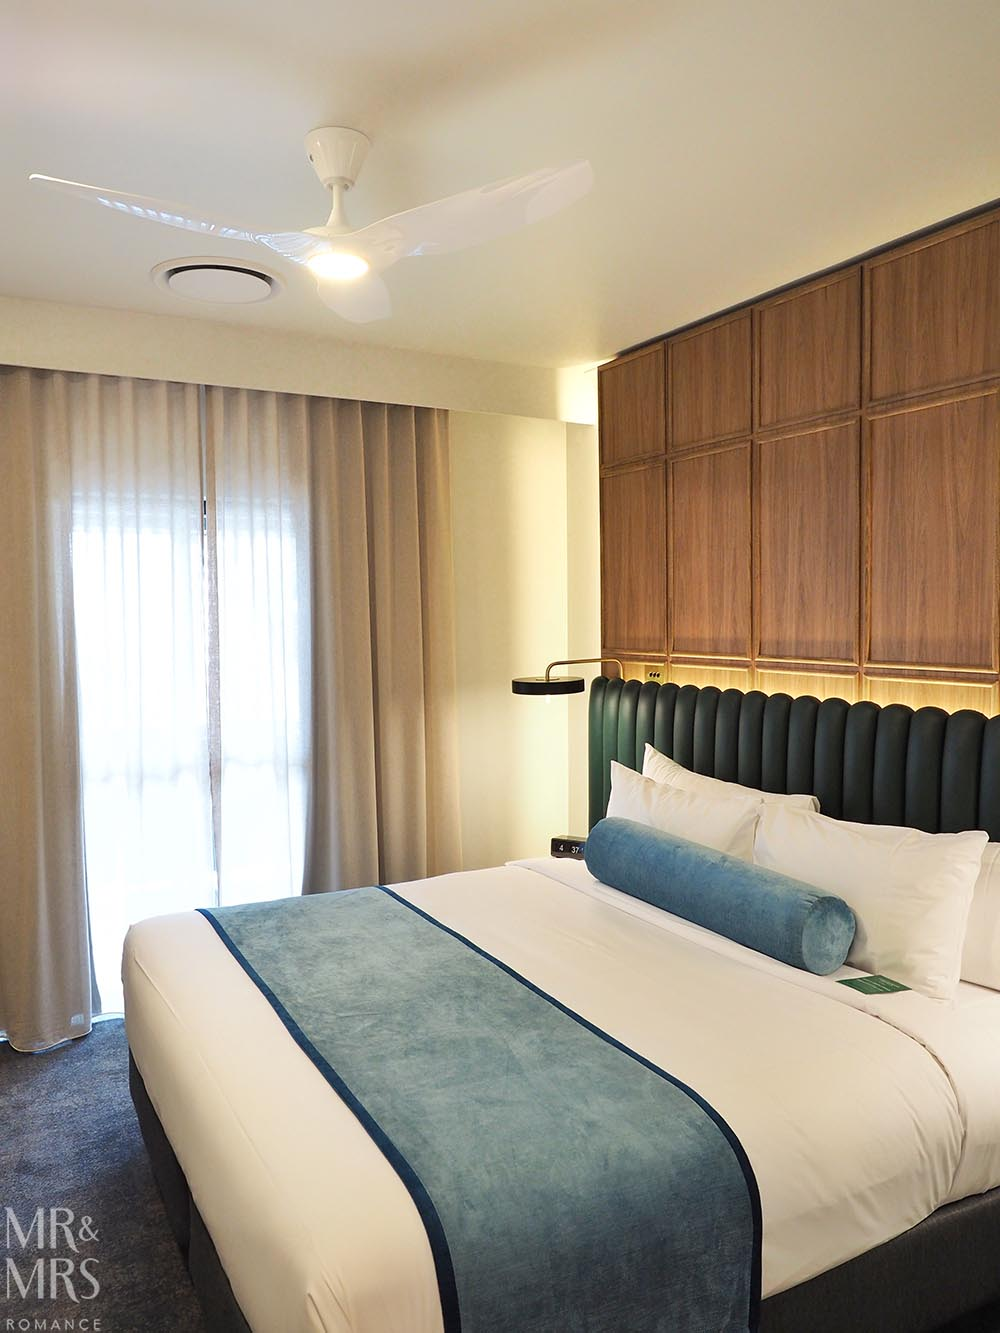 Where to stay in Tamworth NSW - Powerhouse Hotel Tamworth by Rydges - bedroom